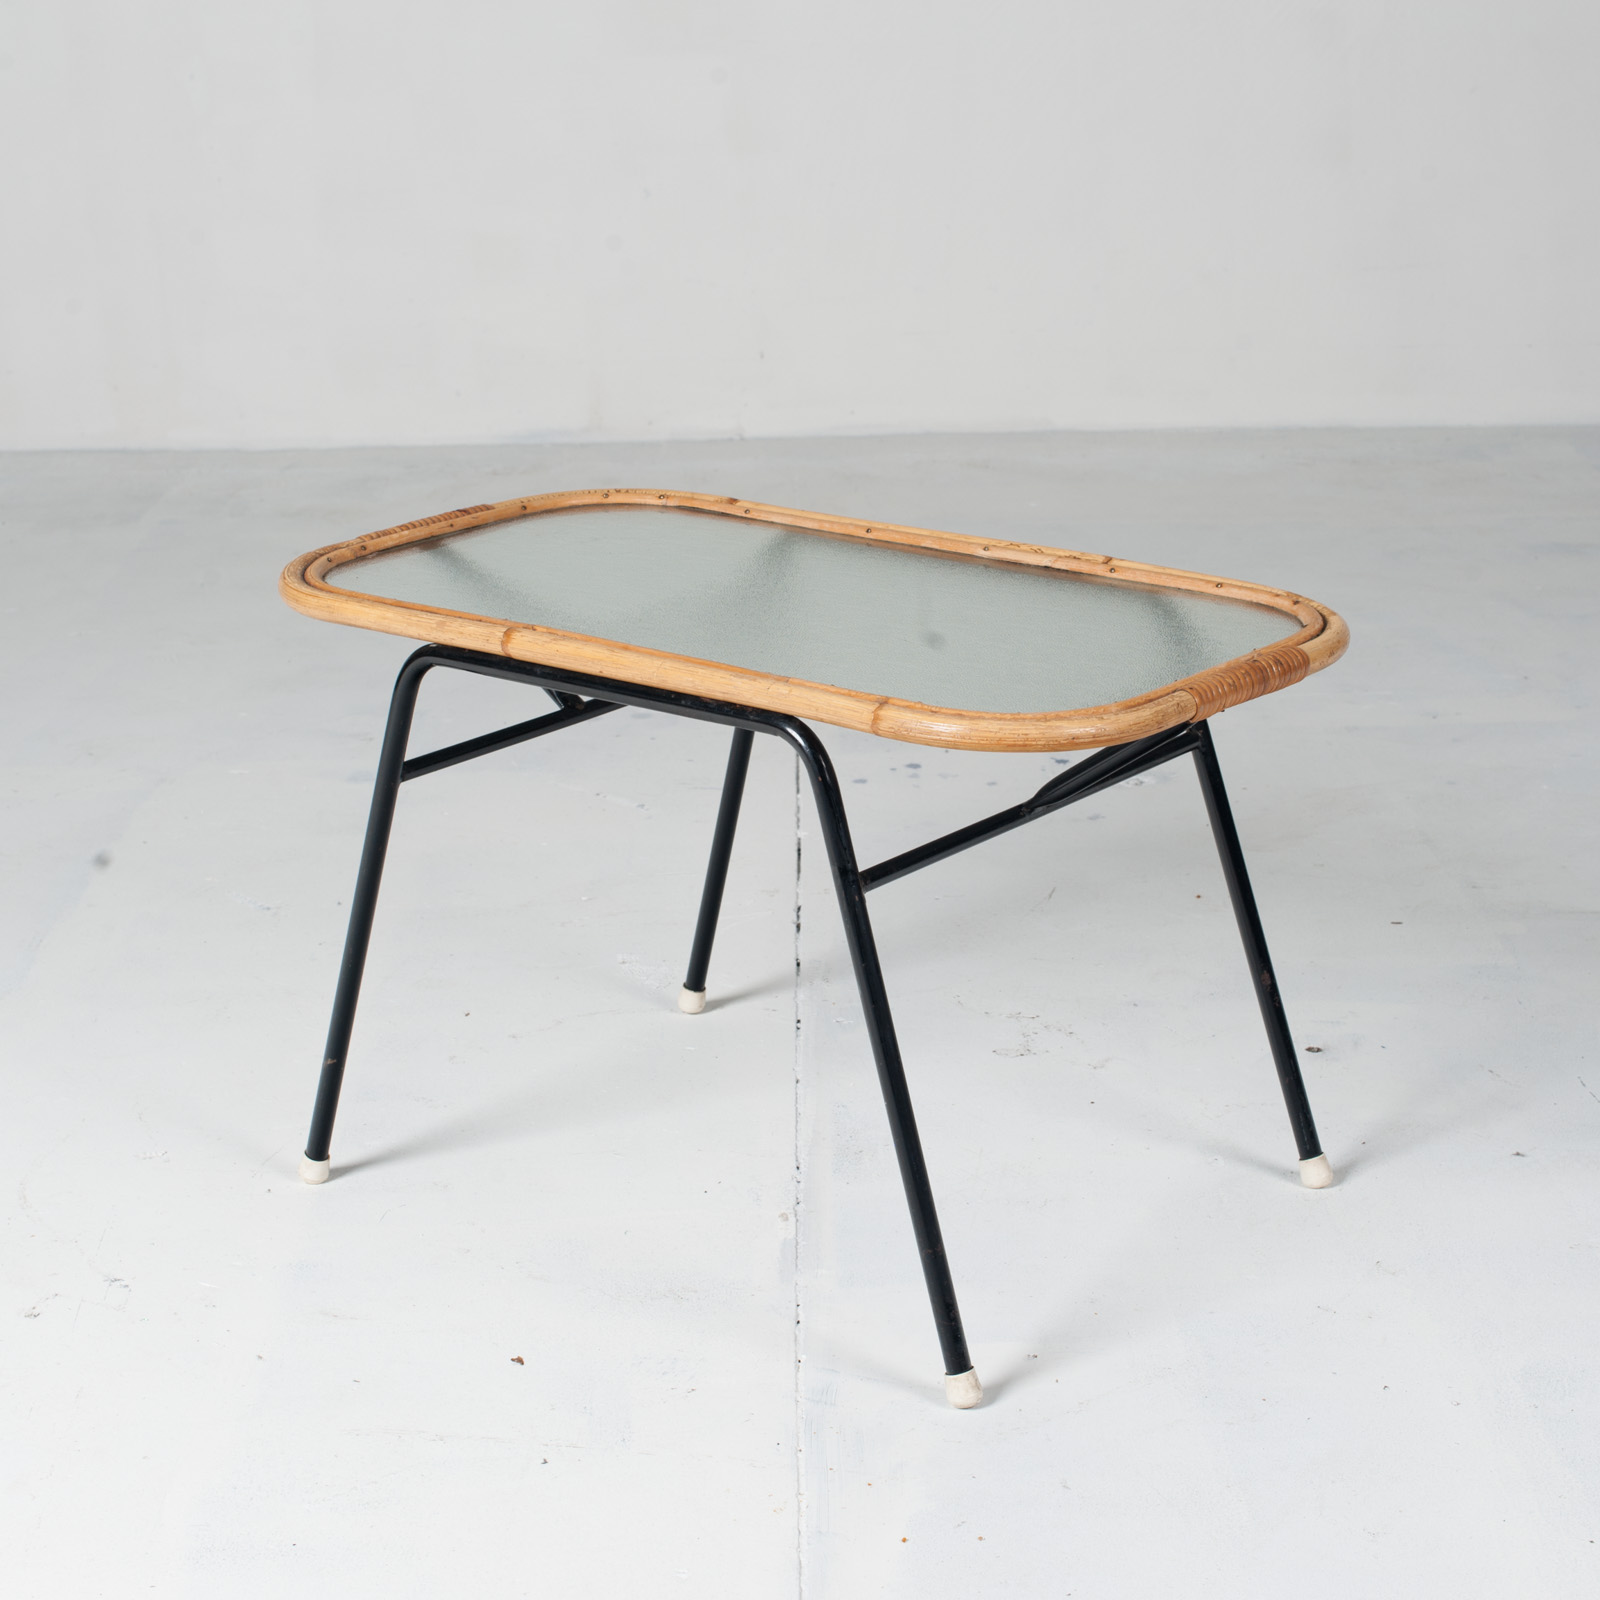 Rectangular Coffee Table By Rohe Noordwolde 1950s Netherlands 02